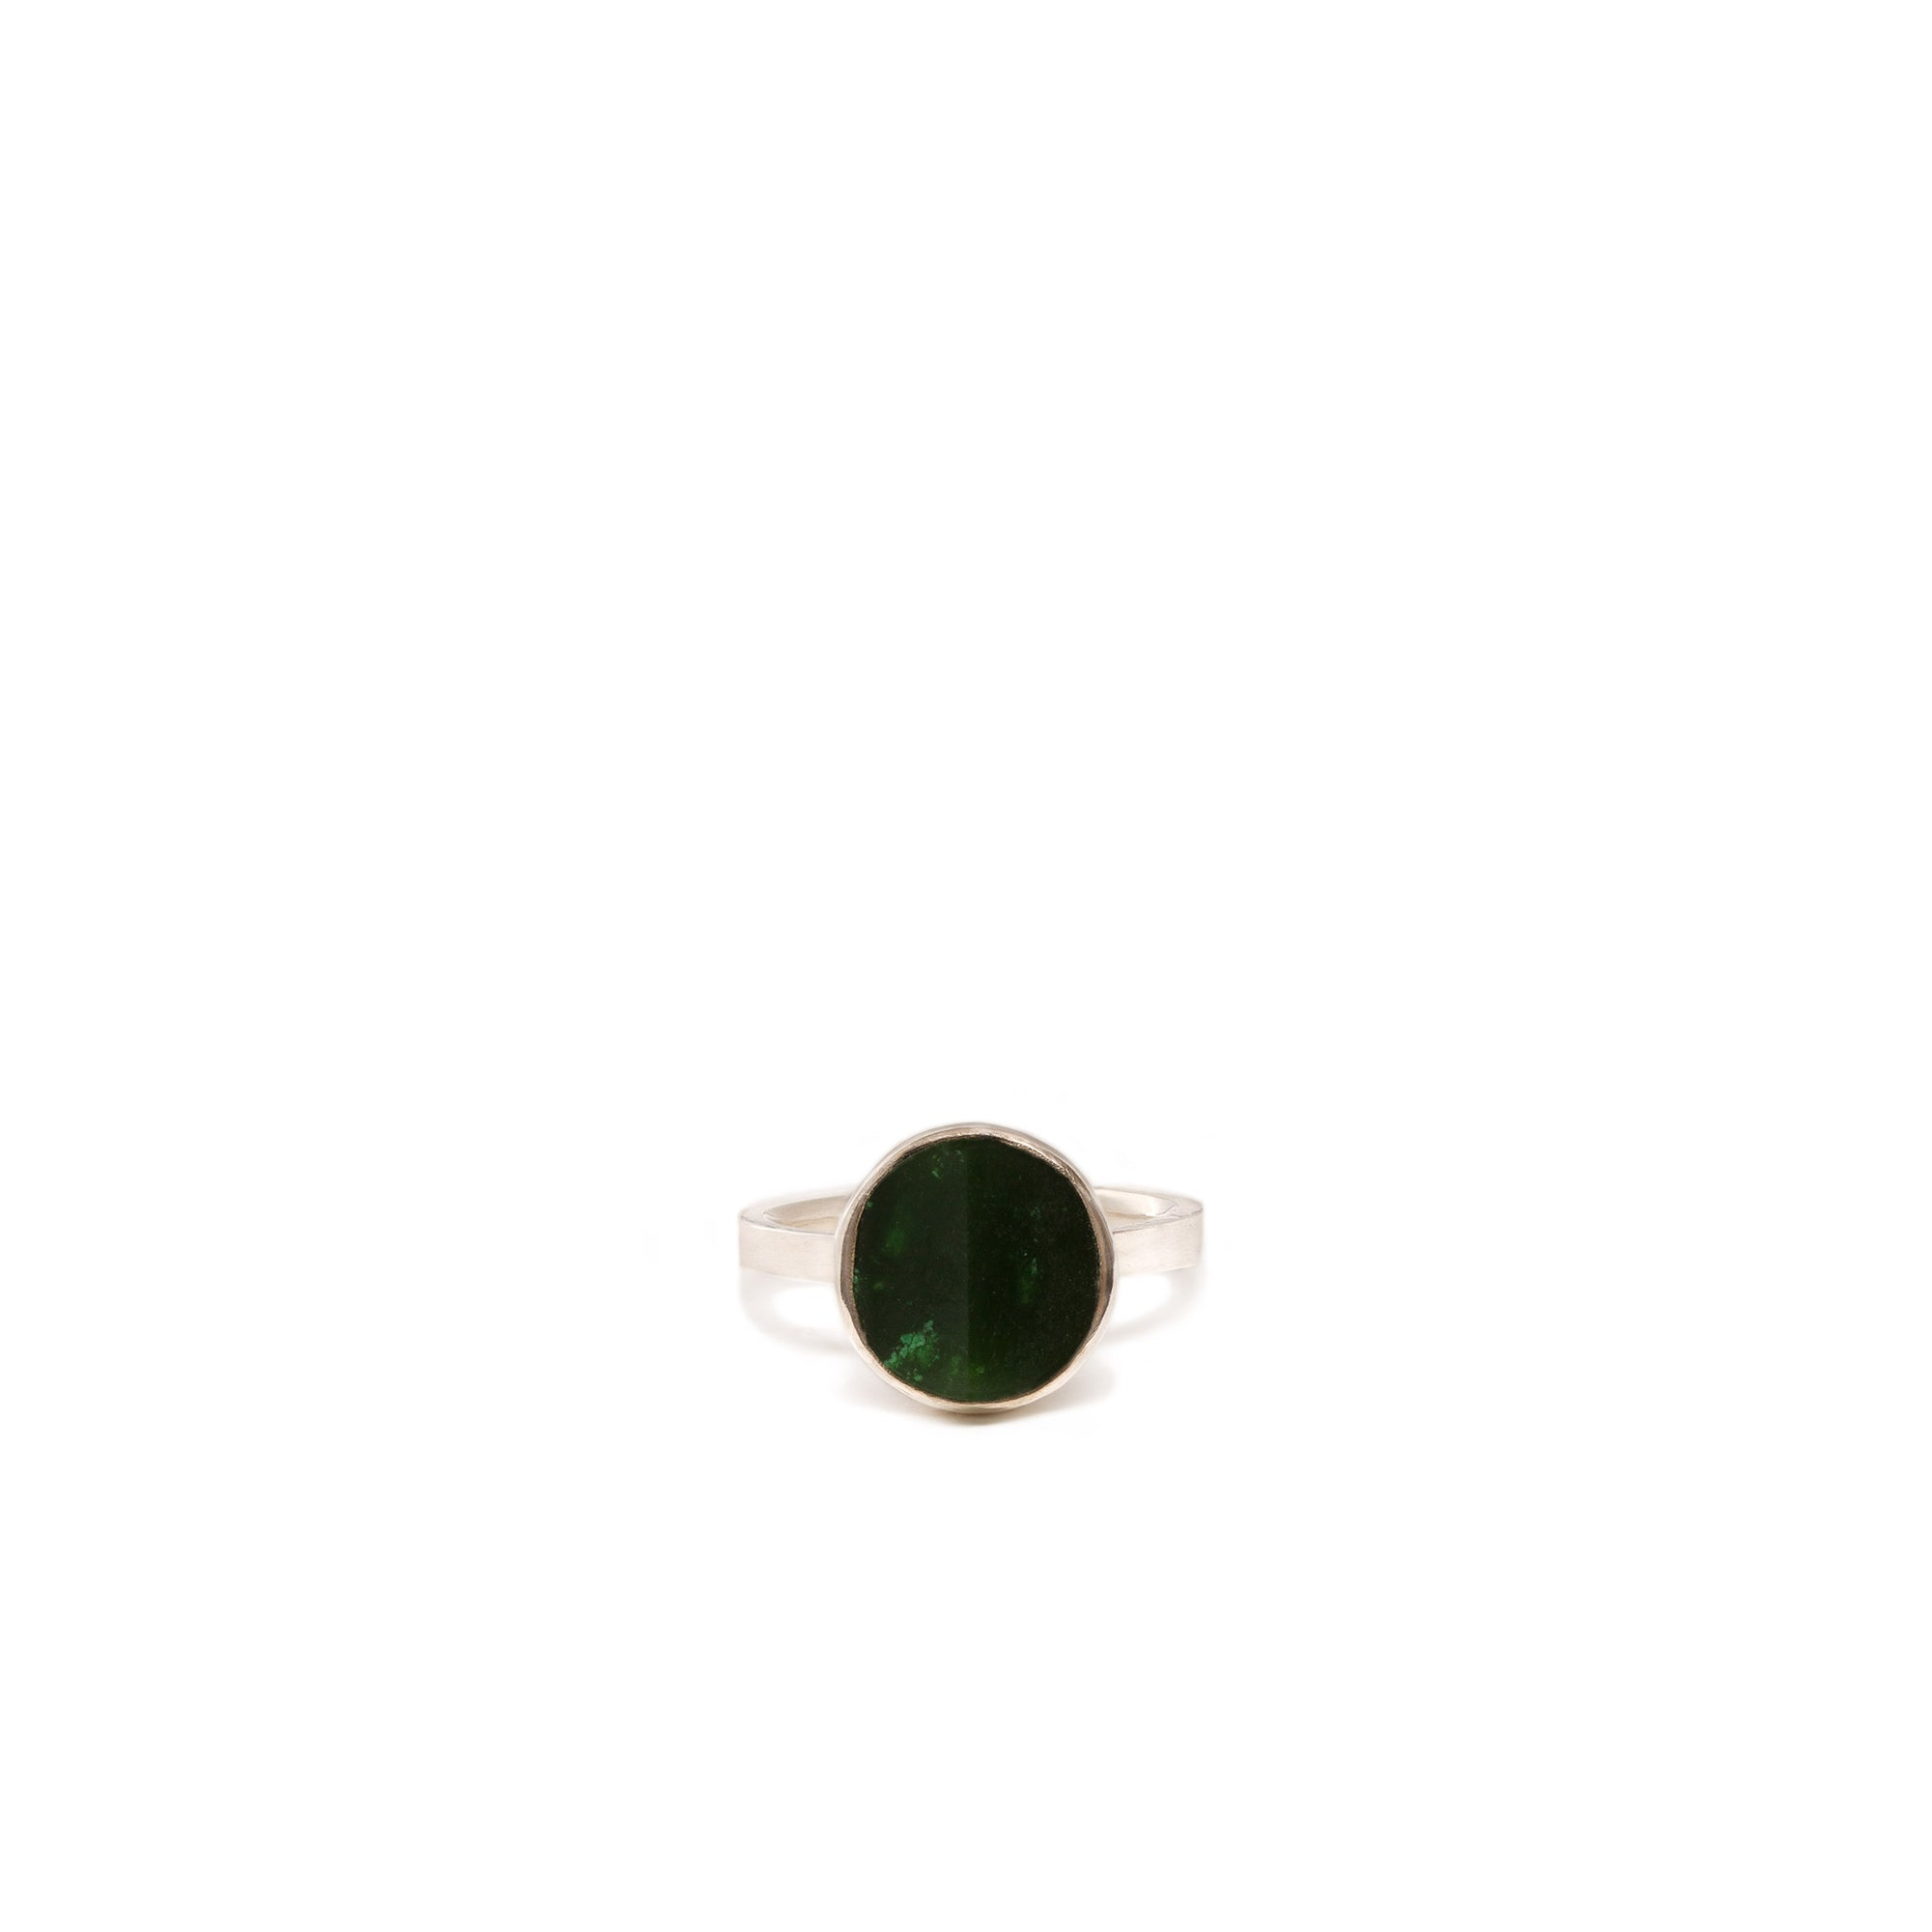 Canadian Jade Small Disc Ring - Size L